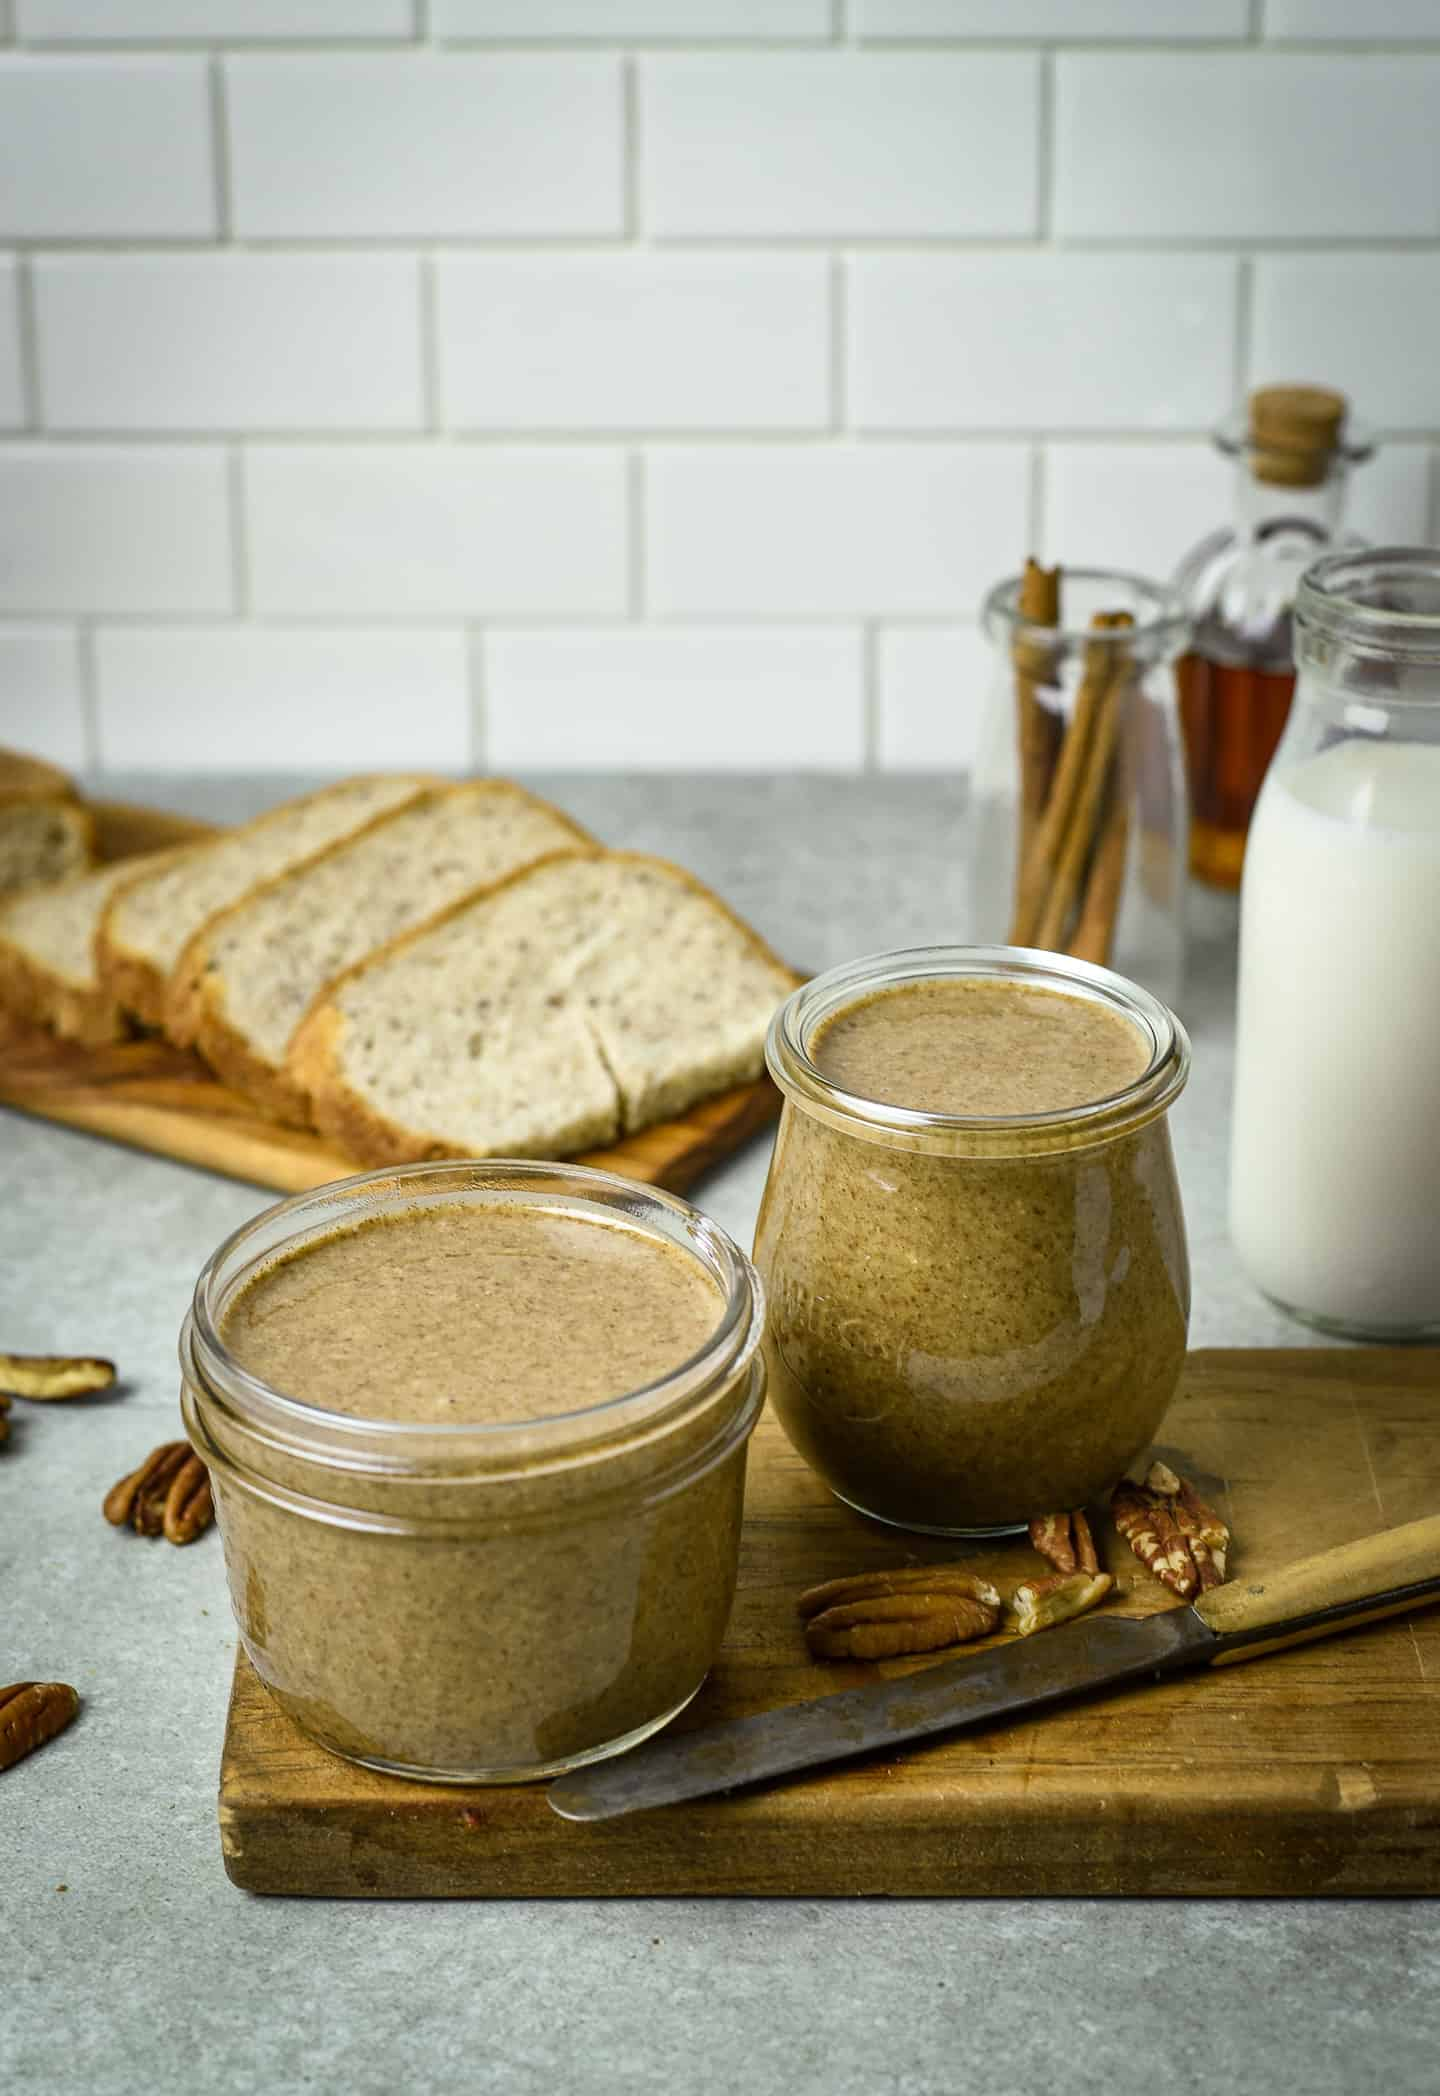 Pecan nut butter in two jars on table with loaf of bread.